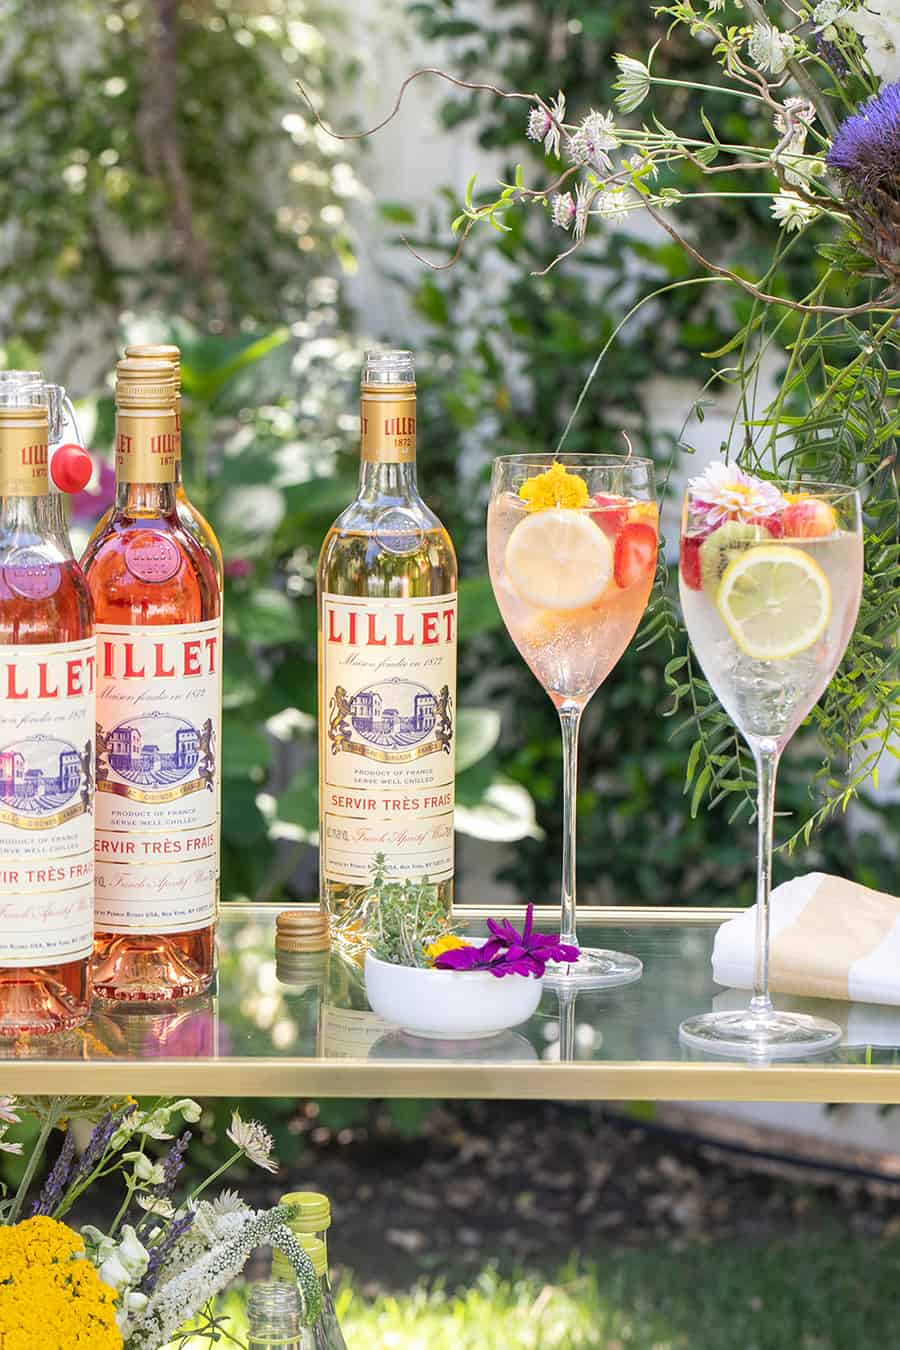 Bottle of Lillet on bar with wine glasses.